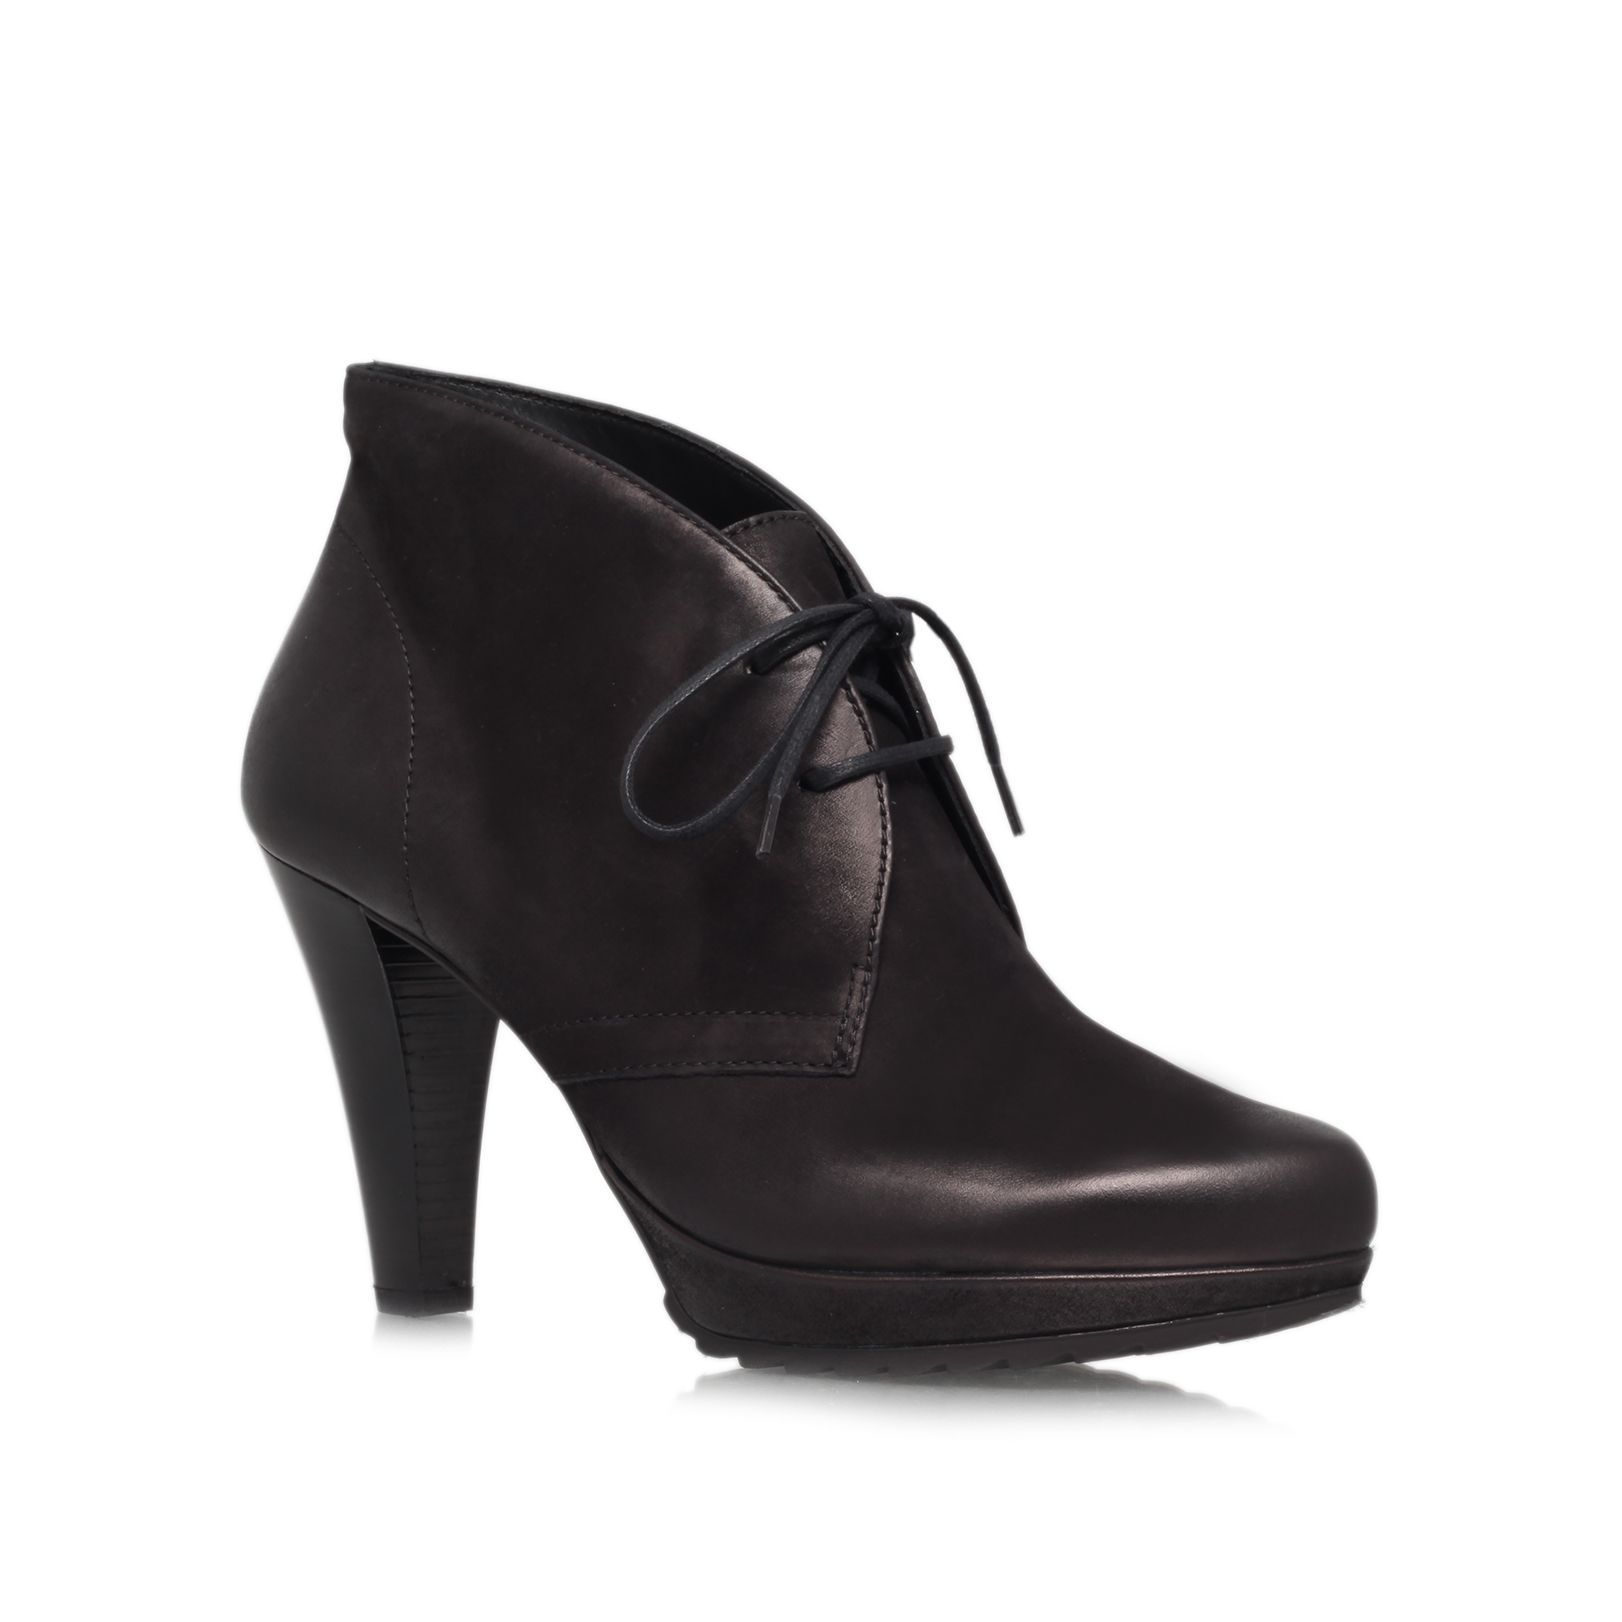 Paul Green Hollie lace up ankle boots, Black Leather